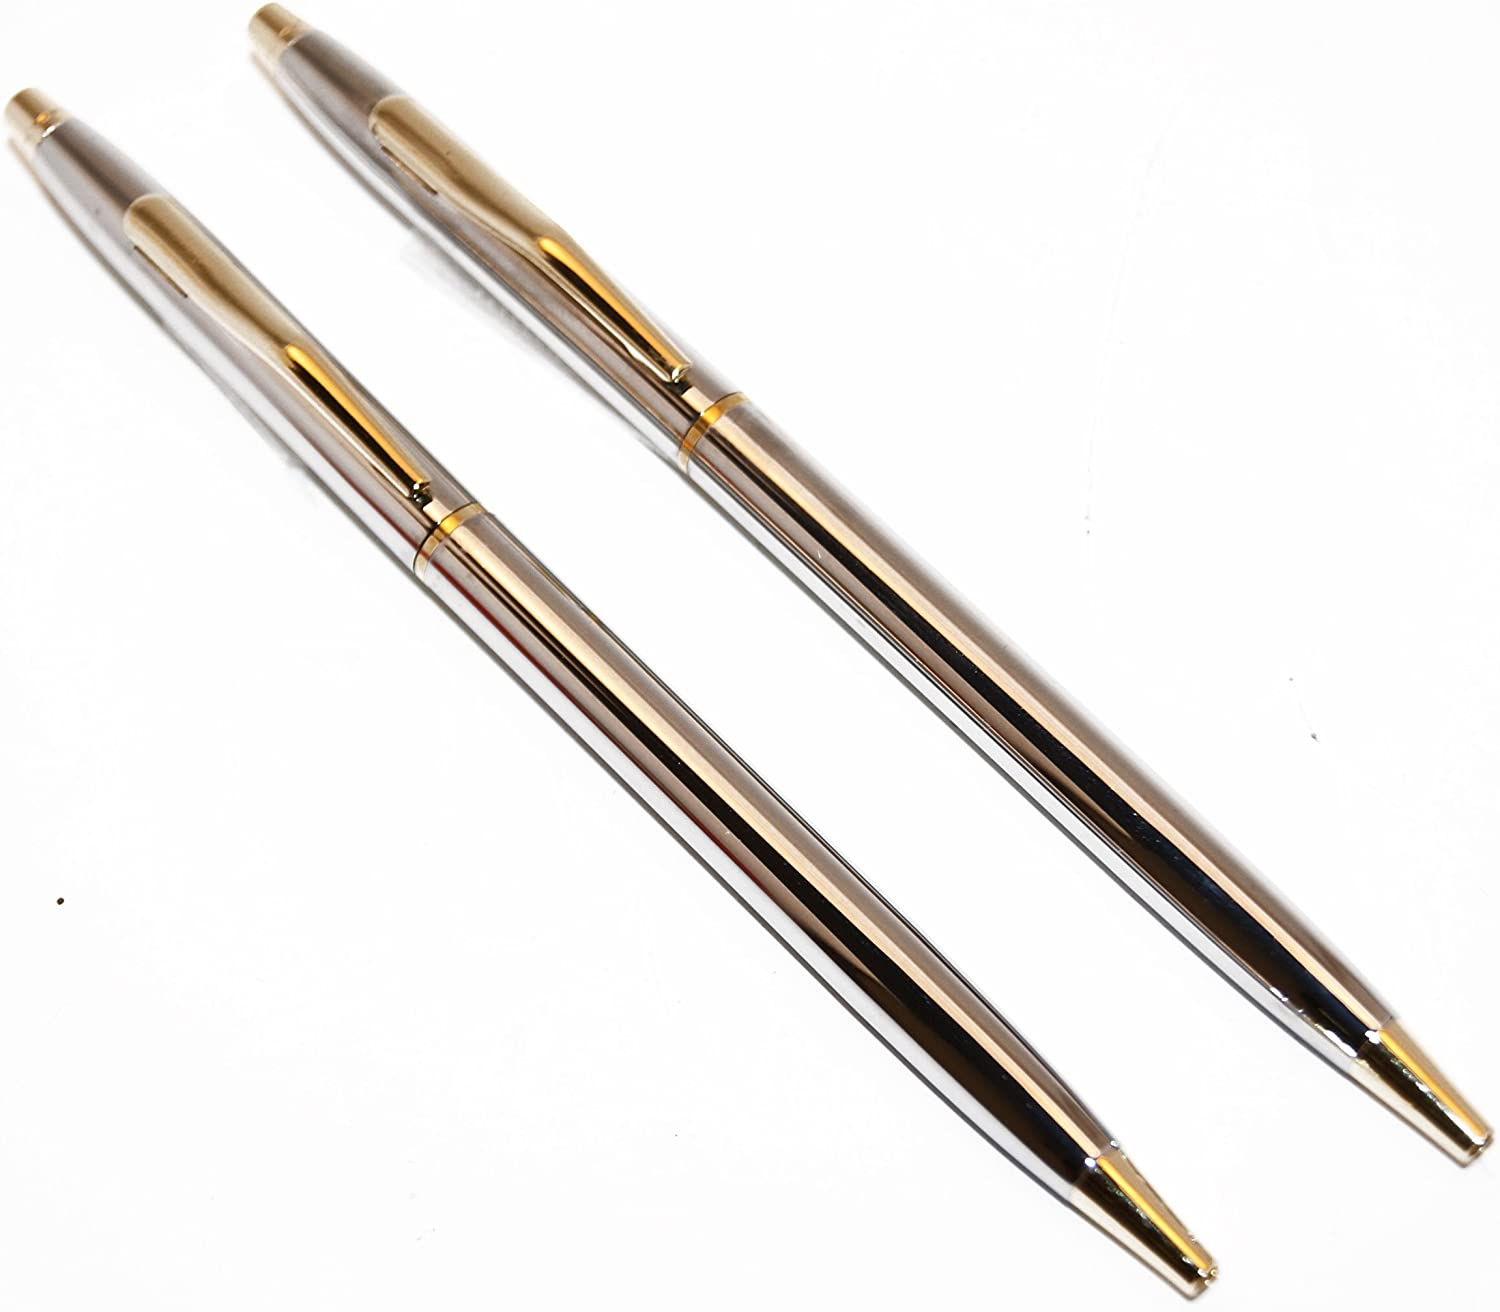 Classic Chrome and Gold Police Uniform Pens | Uniform Pens for Men